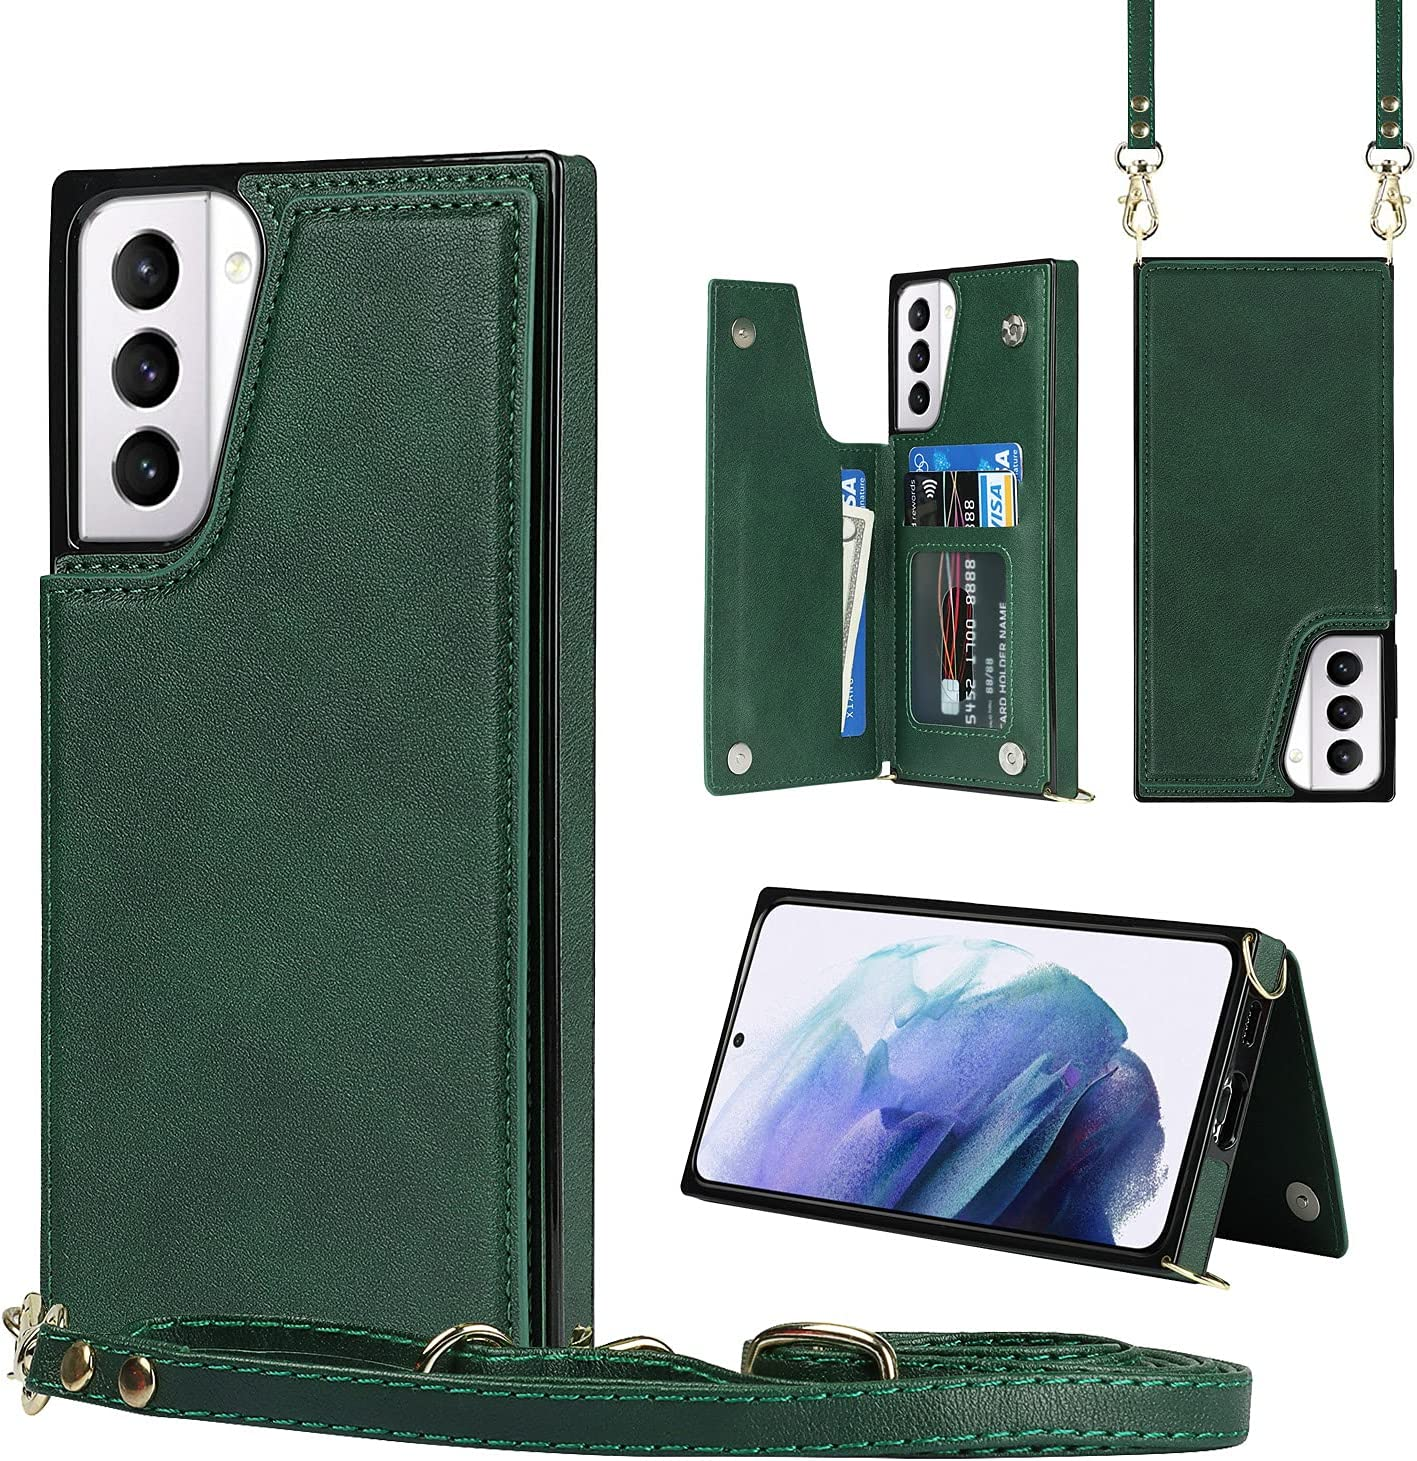 Crossbody Case for Huawei Mate 40 Pro TPU Leather Shockproof Cover, Wonderful Wallet Function, Kick Stand RFID Blocking Material Lanyard Strap with Women Girl (Green)